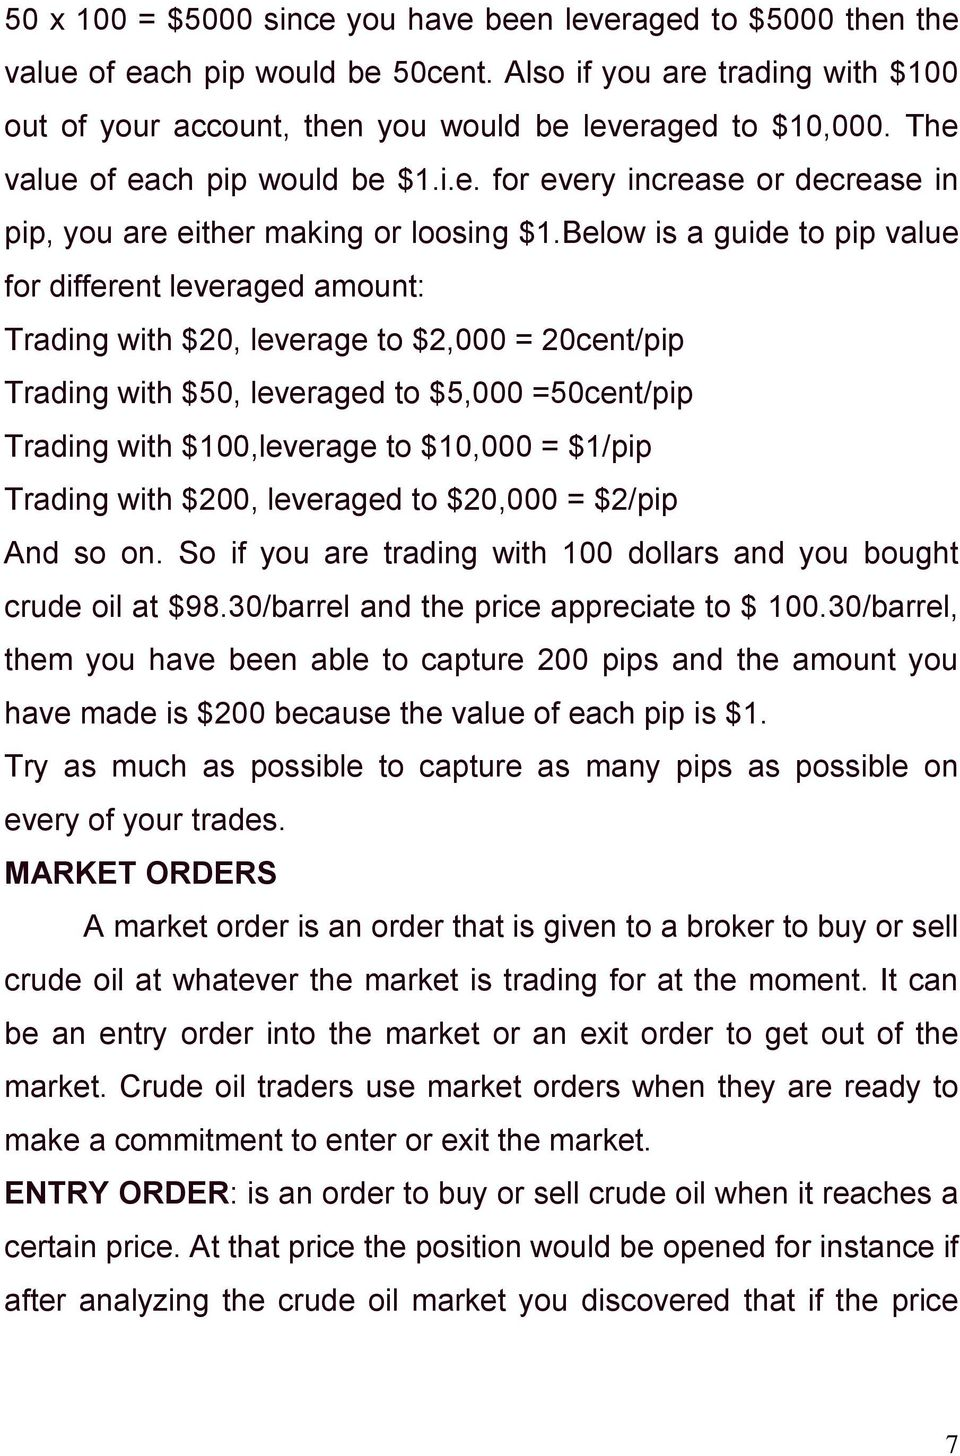 Below is a guide to pip value for different leveraged amount: Trading with $20, leverage to $2,000 = 20cent/pip Trading with $50, leveraged to $5,000 =50cent/pip Trading with $100,leverage to $10,000